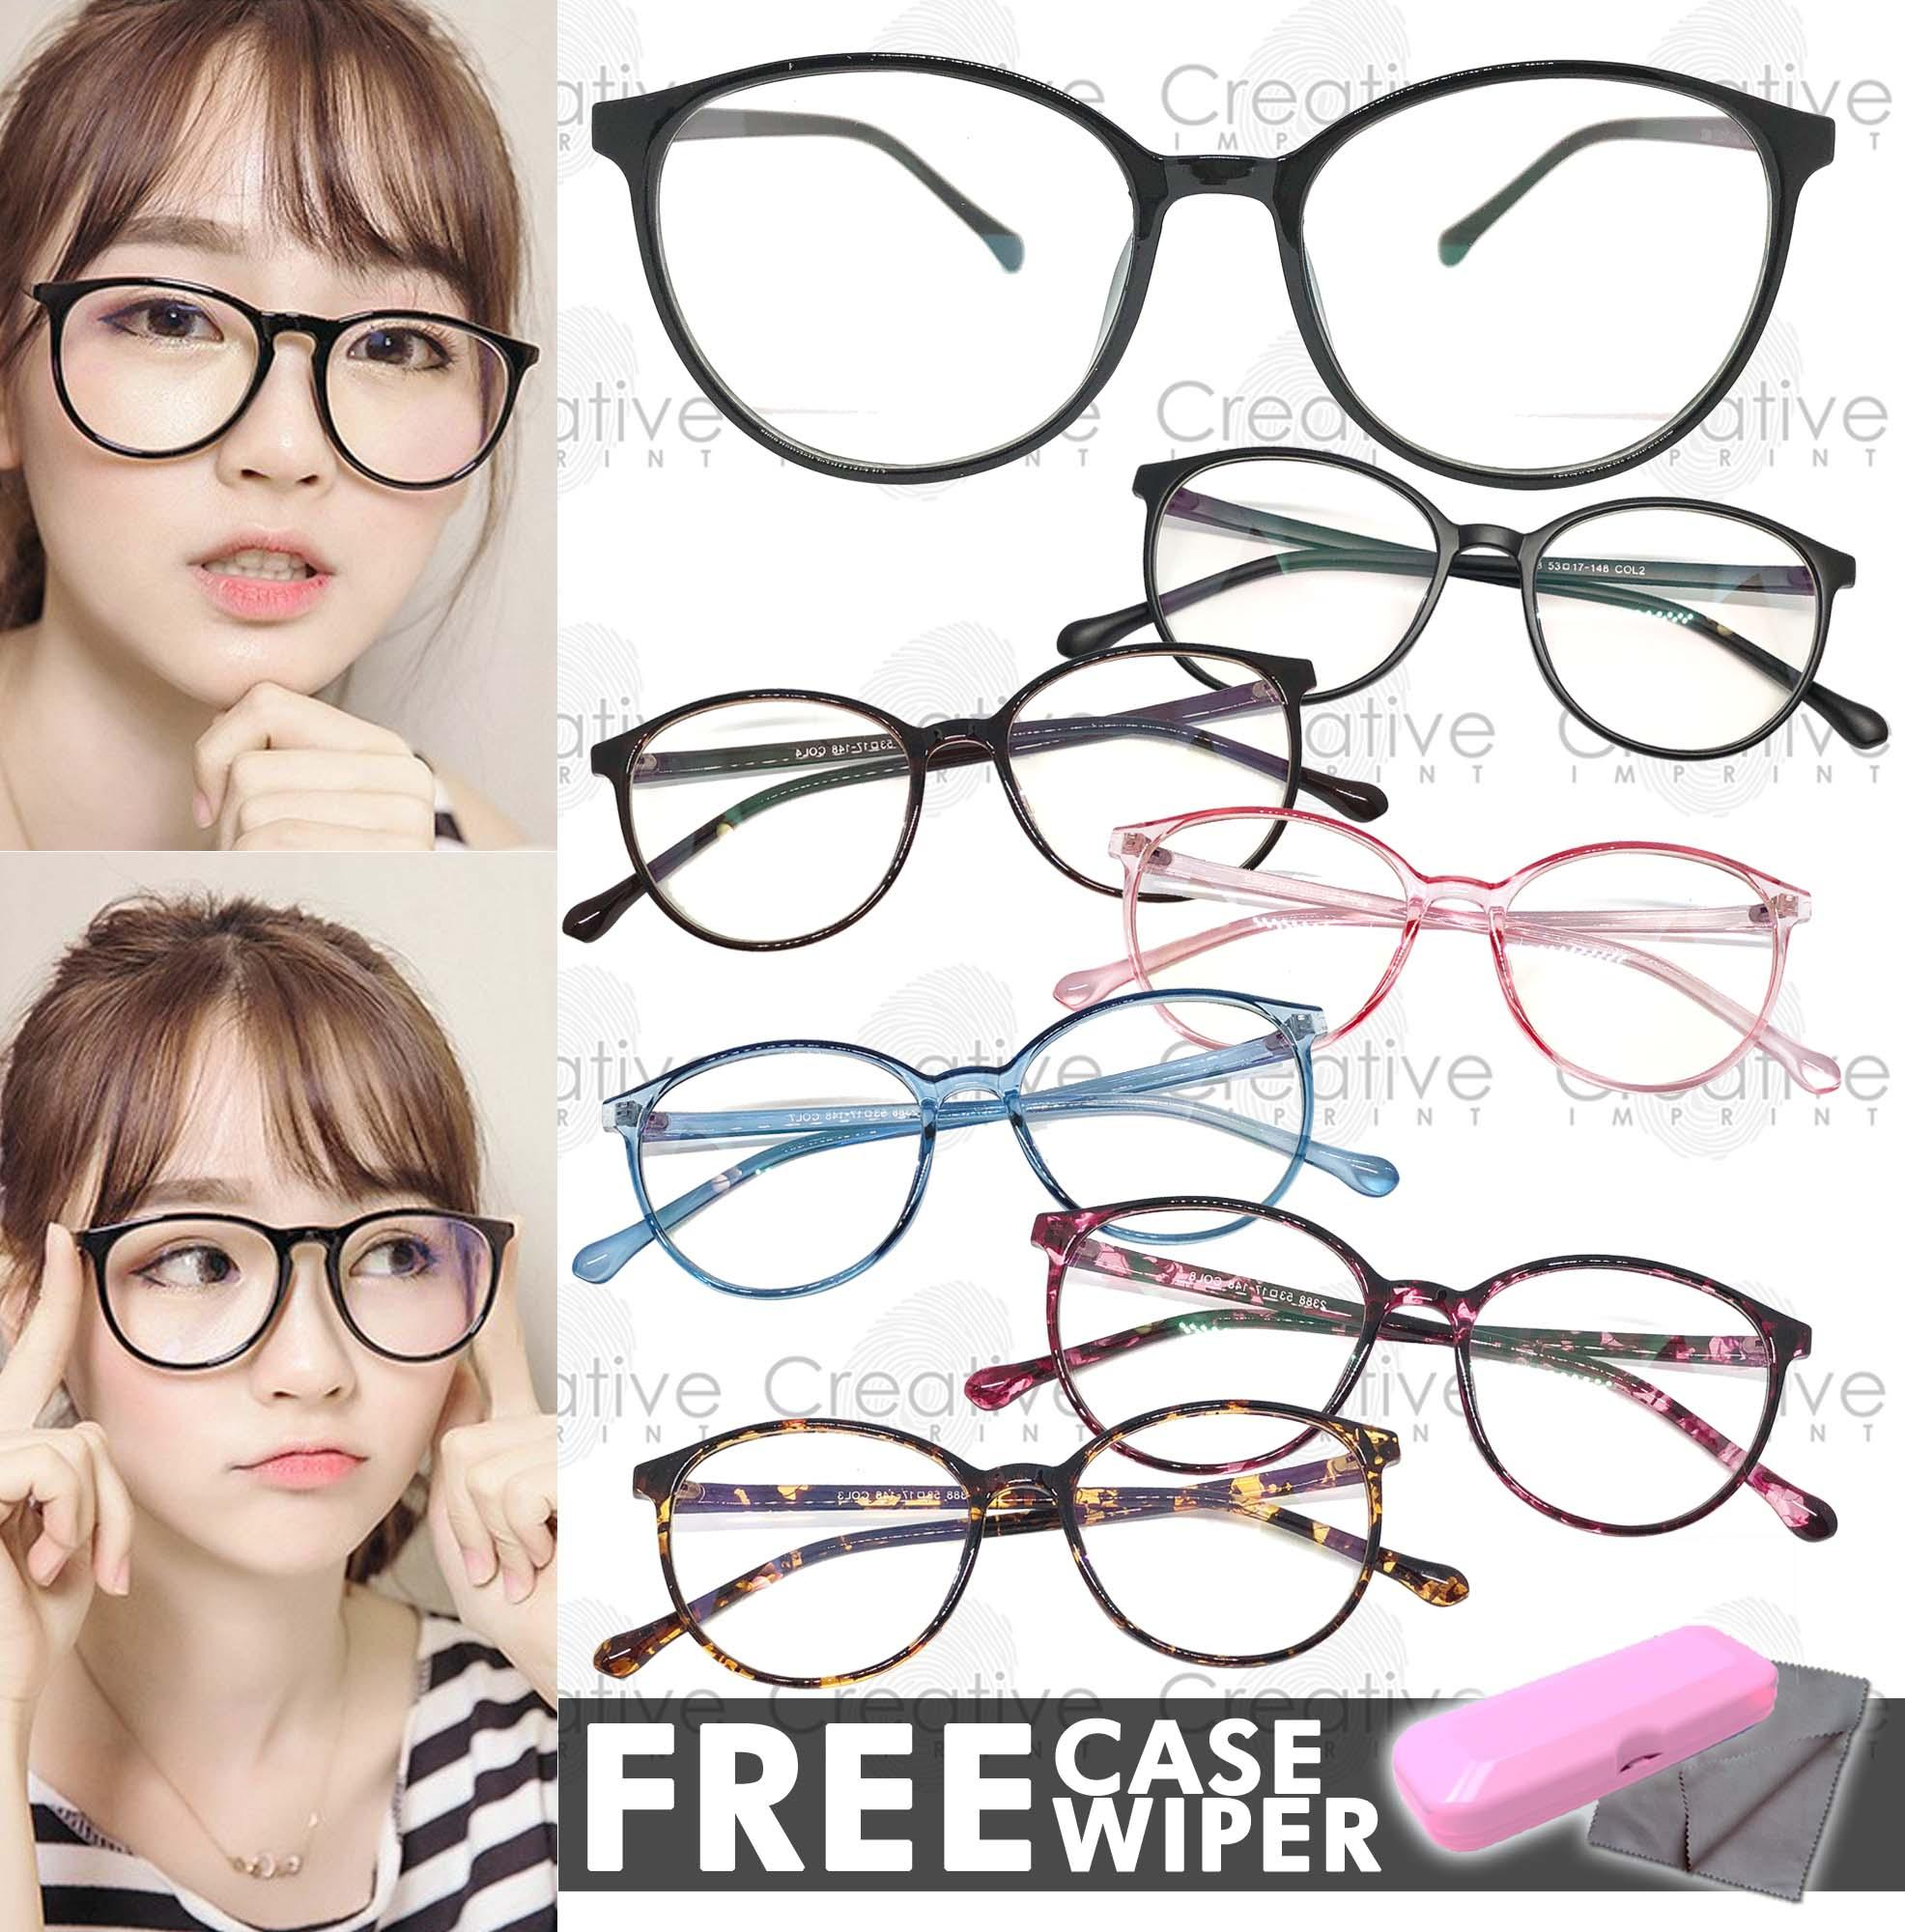 be9638743 Creative Imprint Eyeglasses Anti-Radiation Lens Anti-Fatigue Anti-Blue  Light Flexible Computer